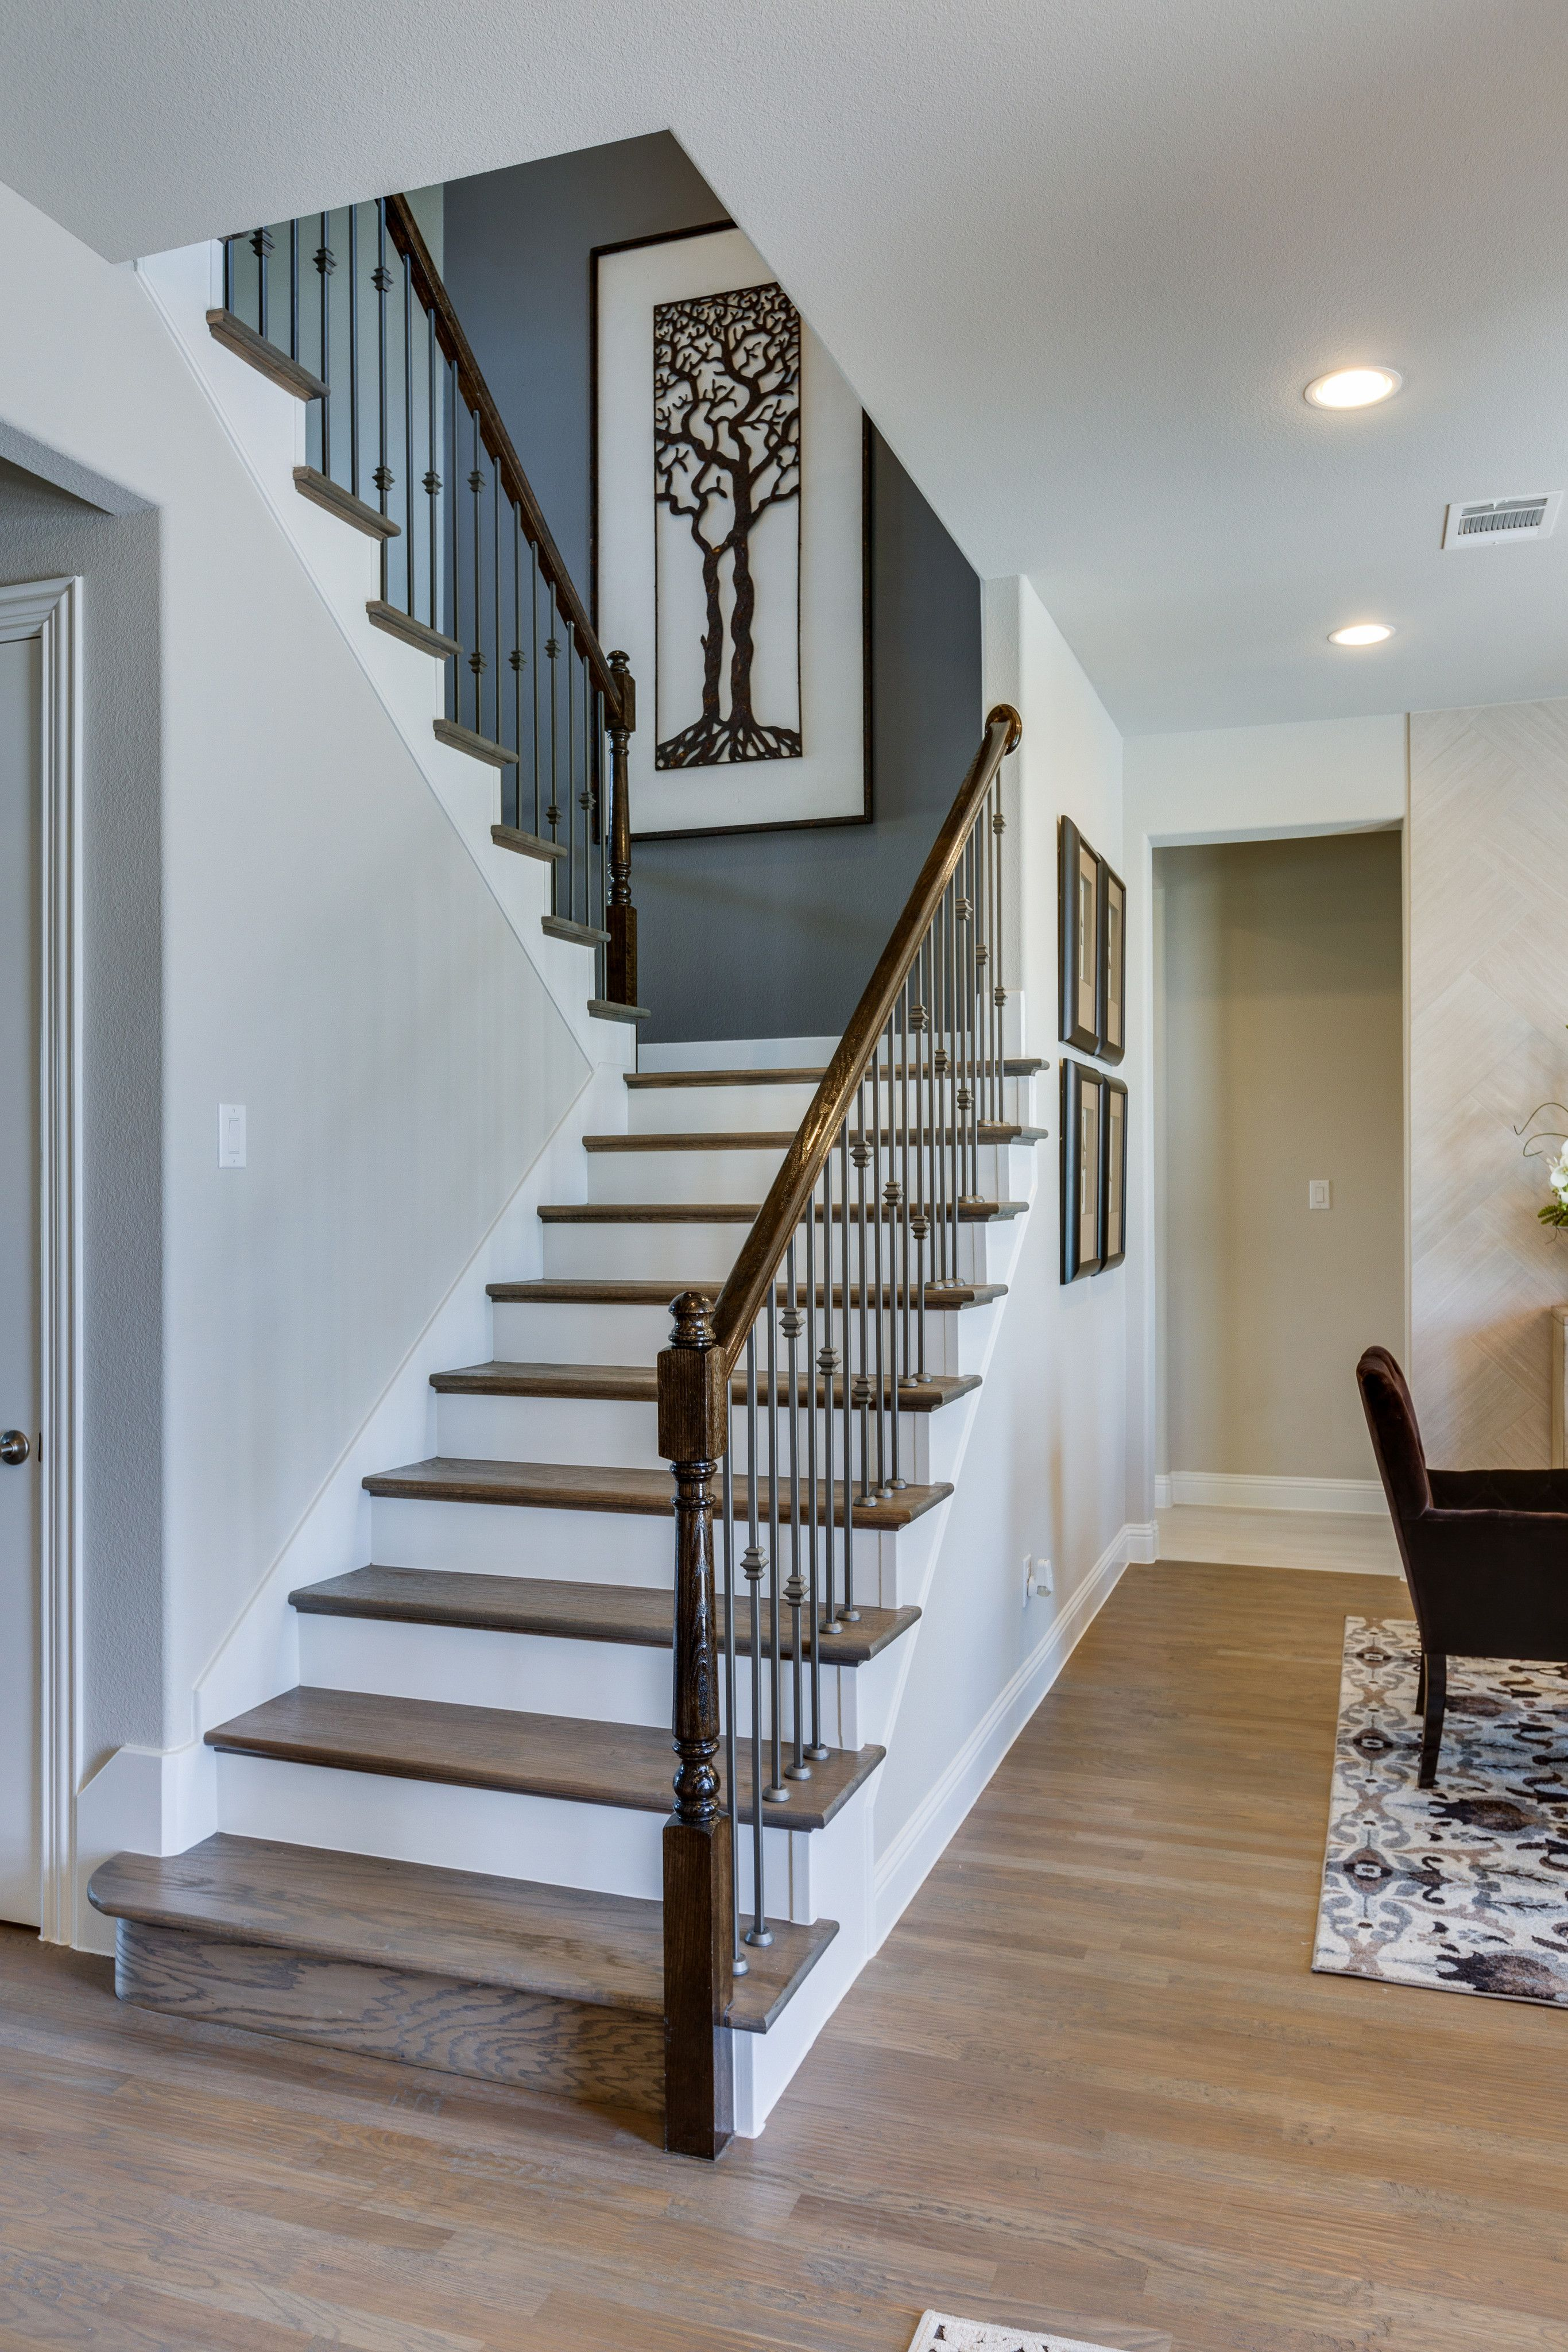 10 Most Popular Light for Stairways Ideas | Tags: led ...